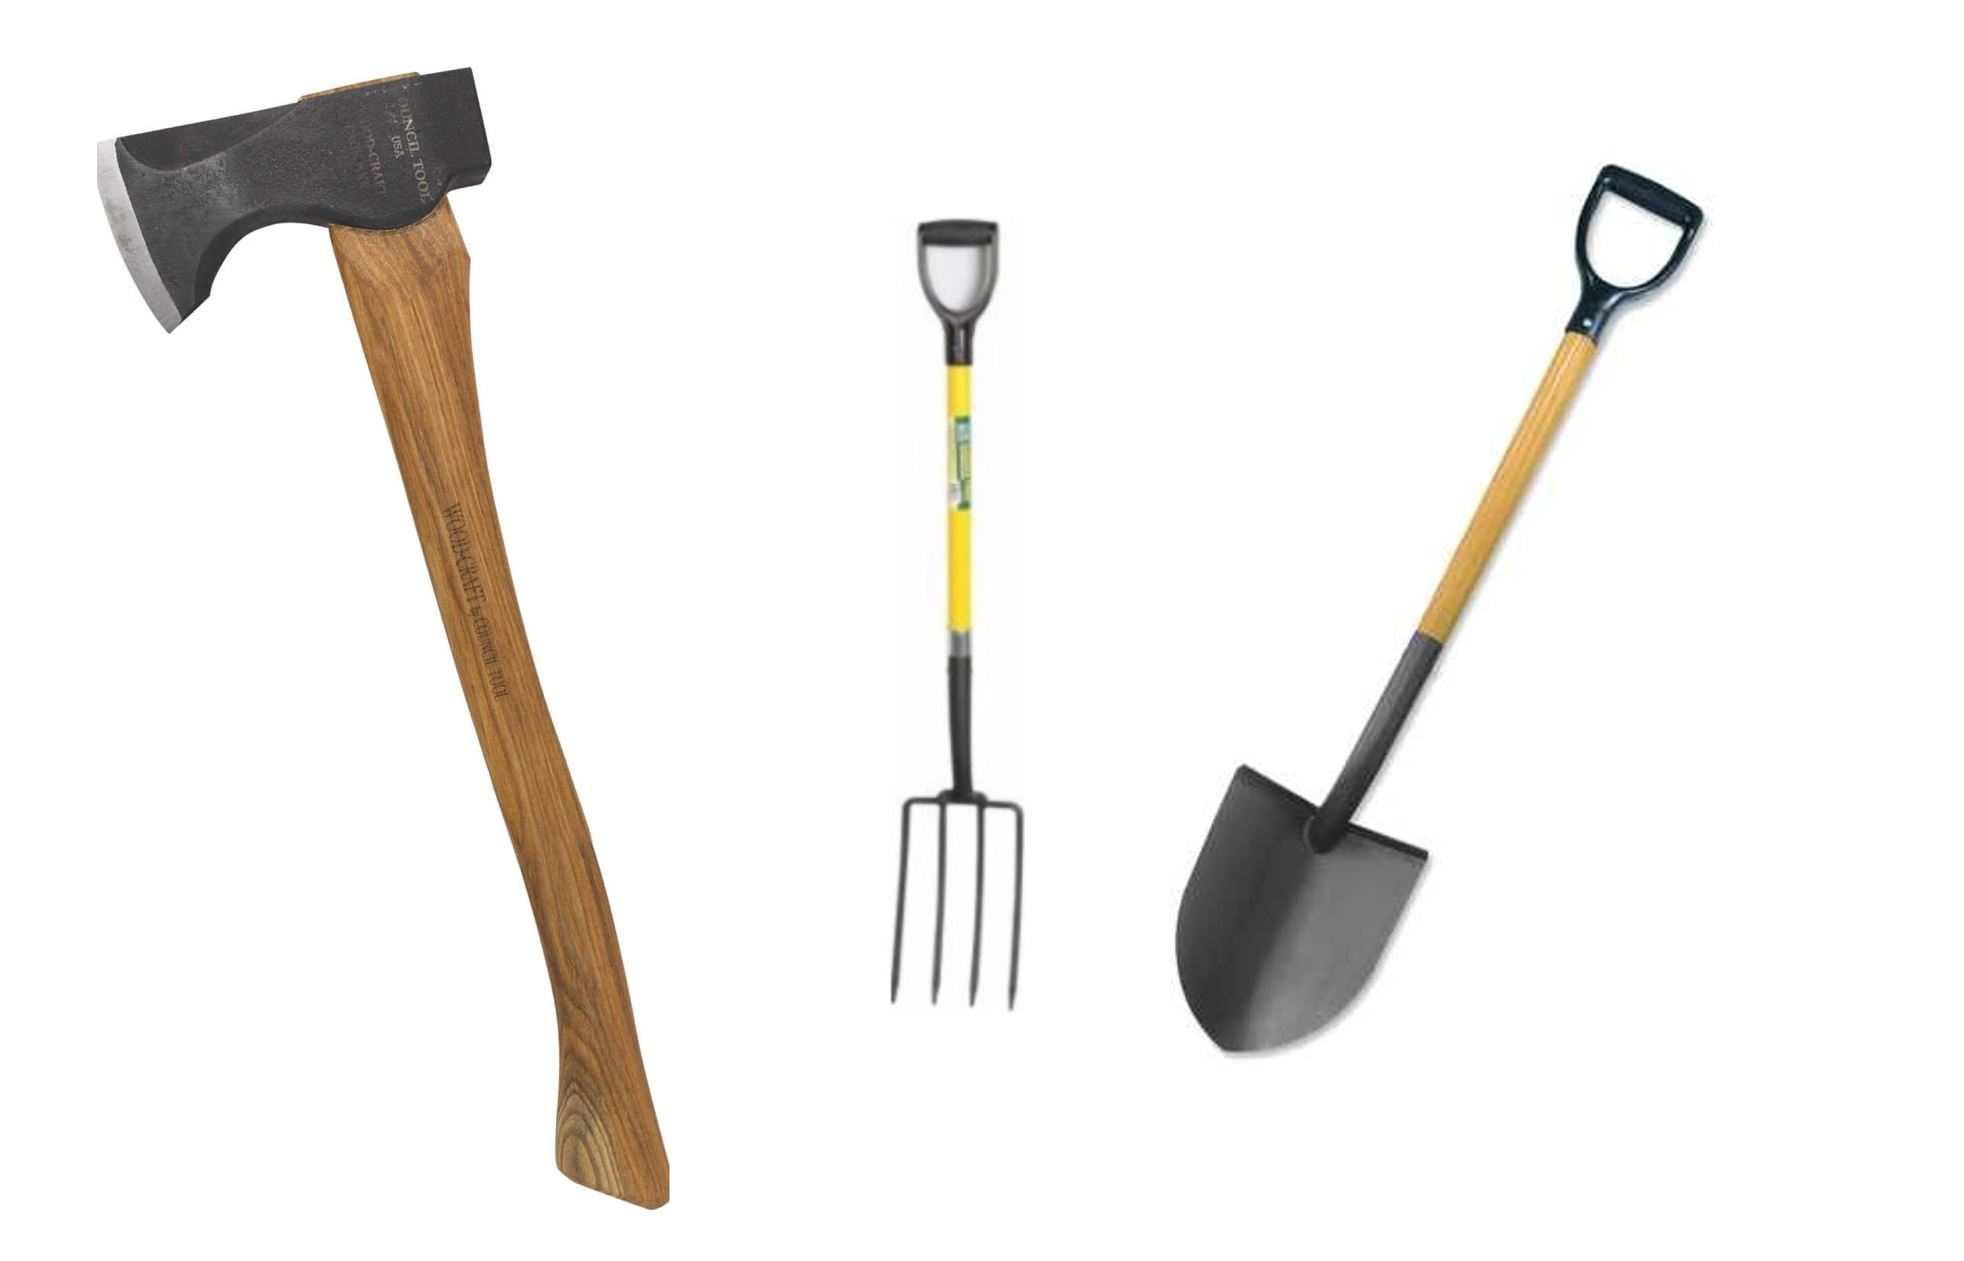 Carry 3 Large handle tools